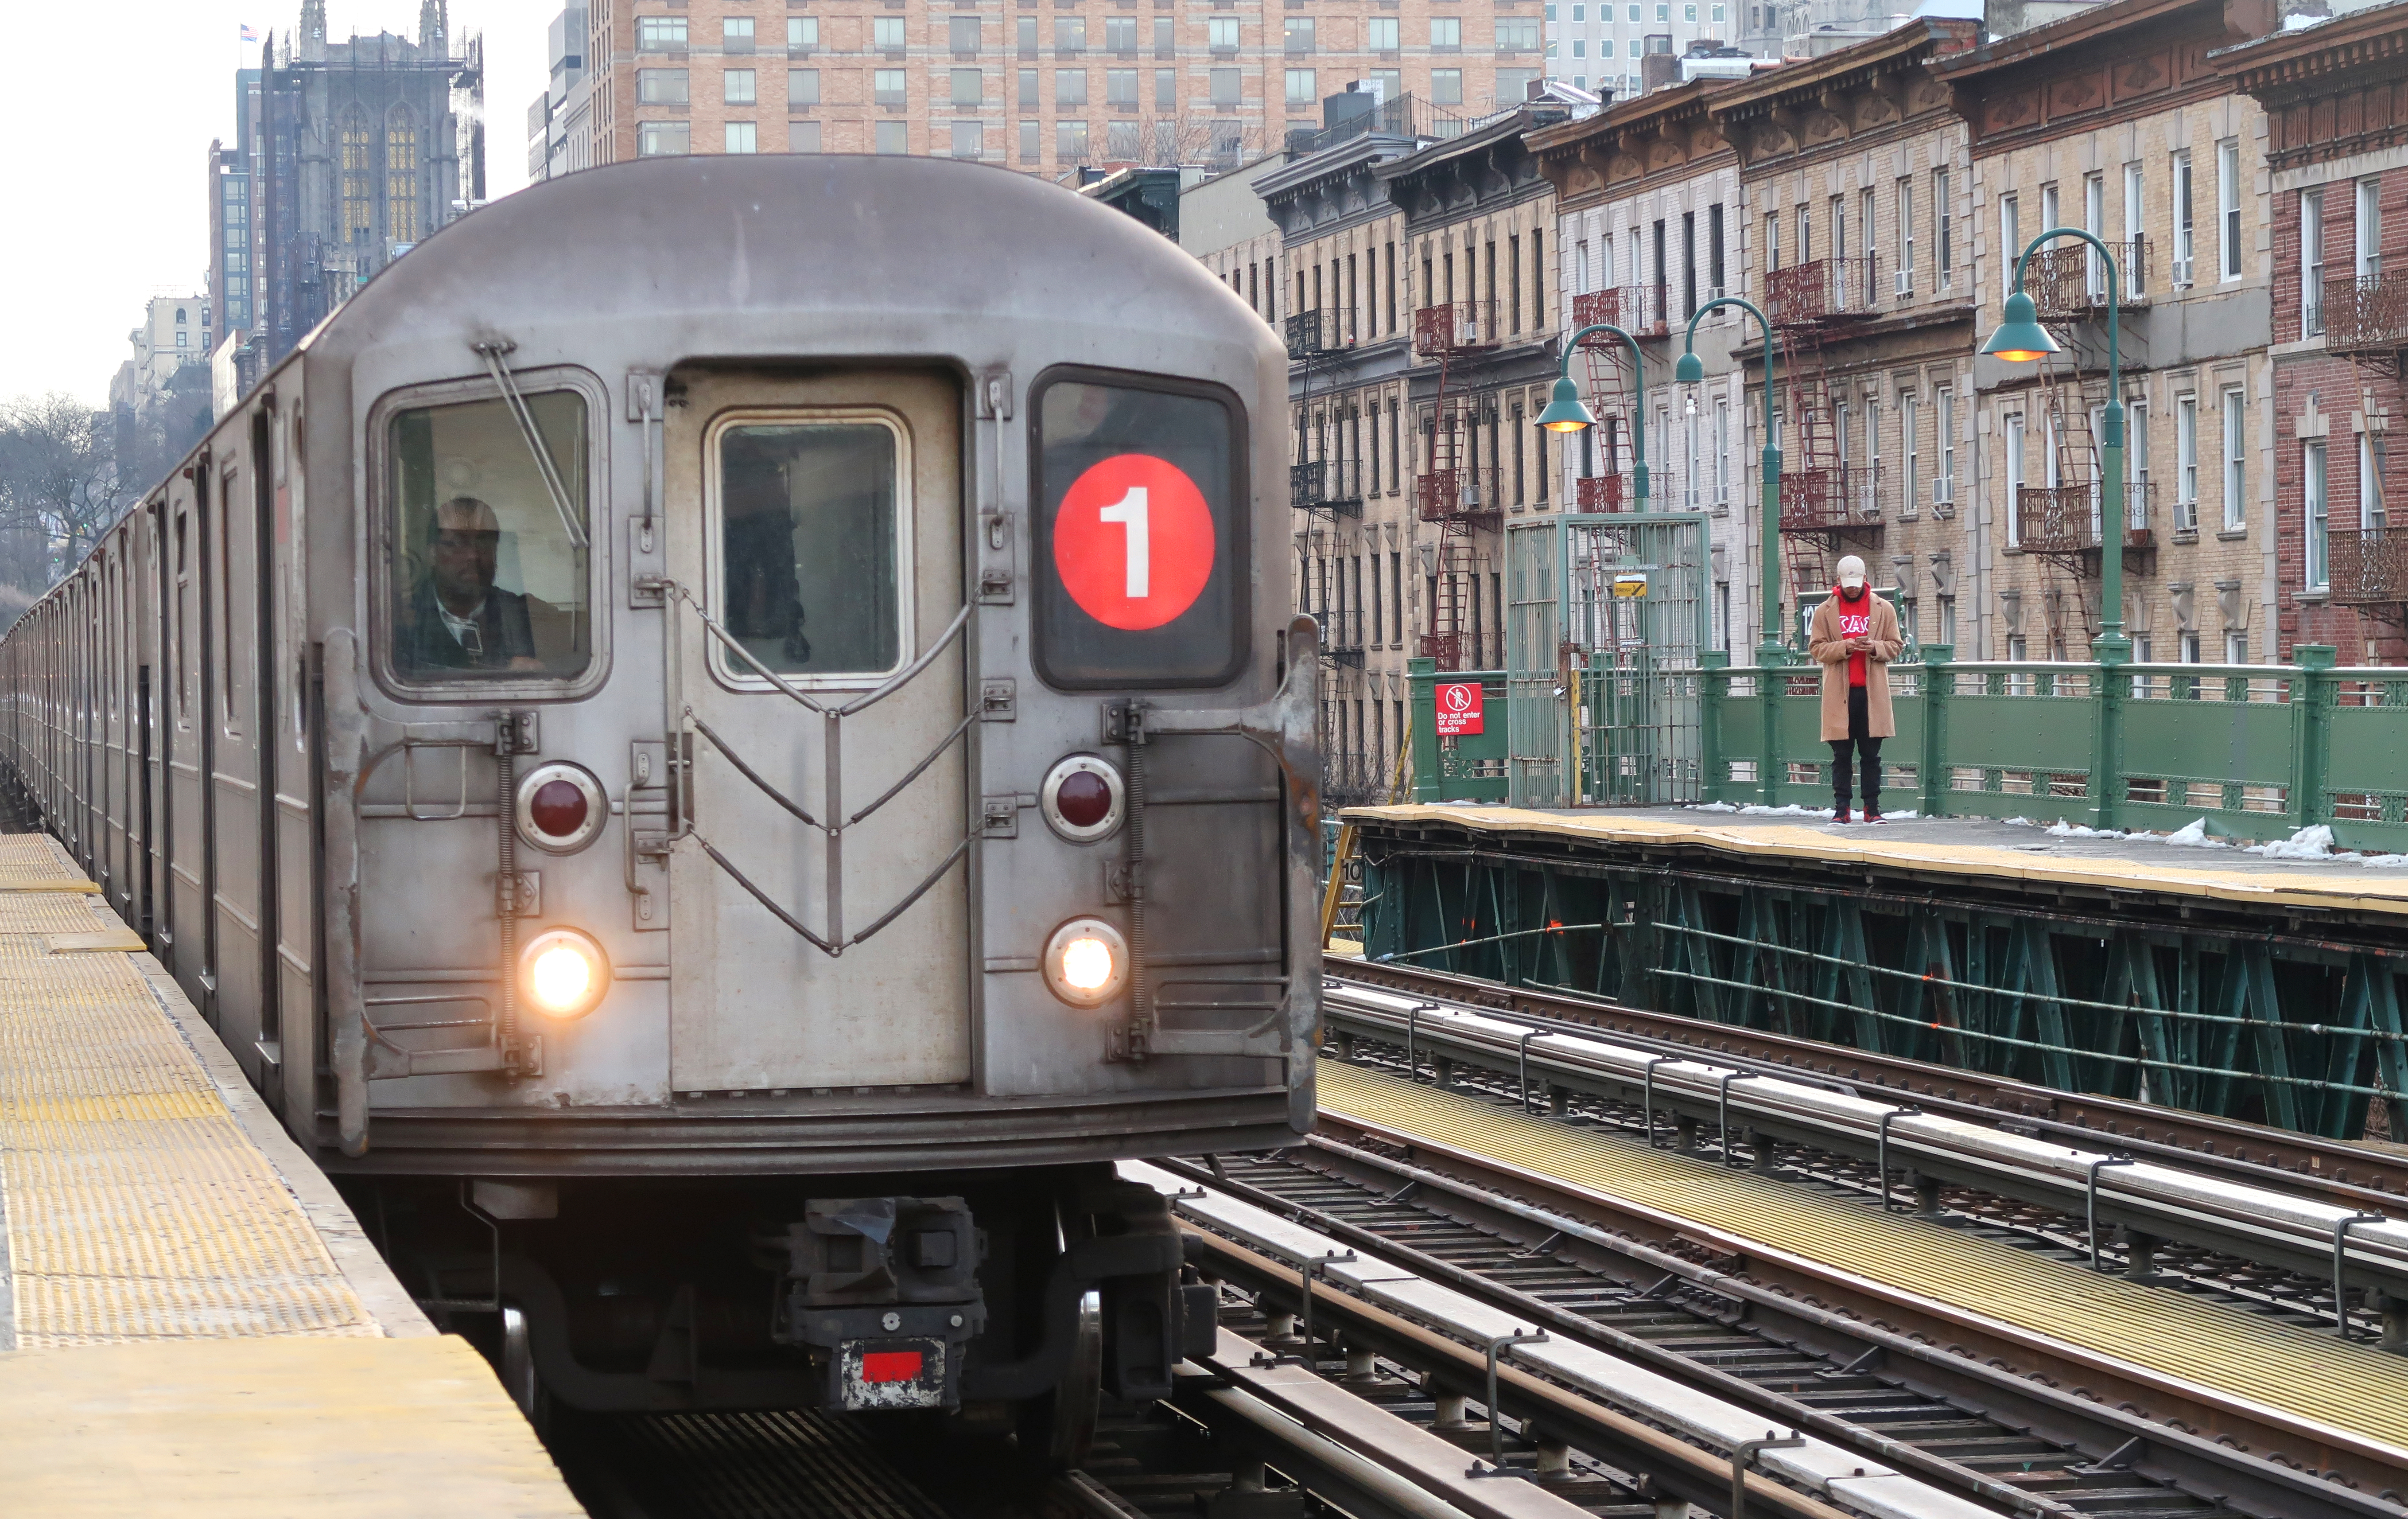 125th Street Subway Station in New York City